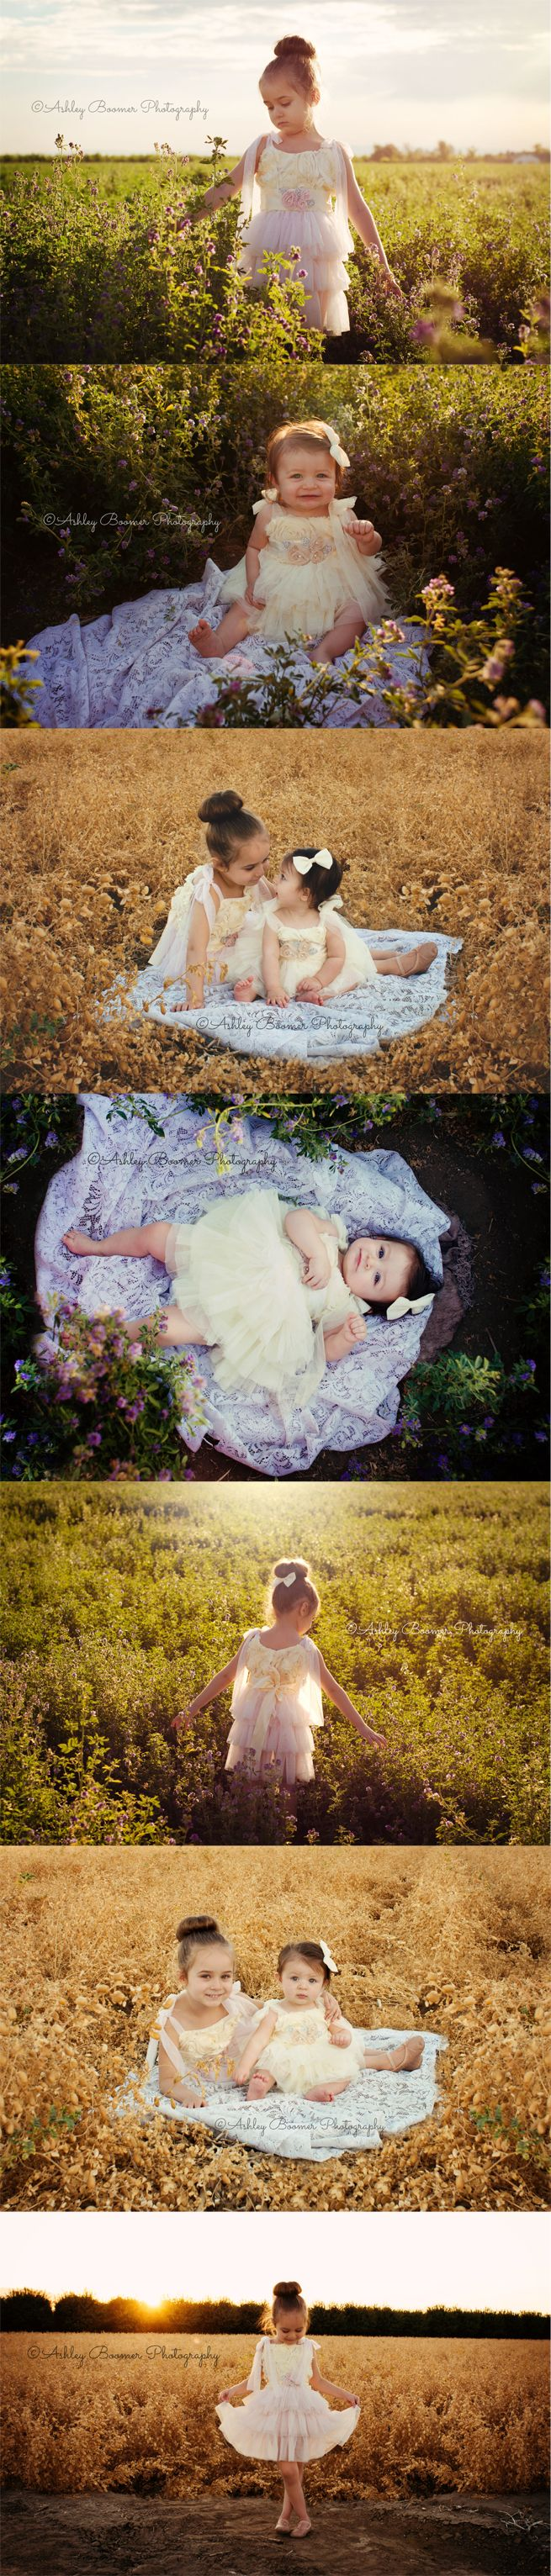 Ashley Boomer Photography | Sister sibling pictures | Outdoor child, baby, toddler photography | Emmiandlivi boutique - Etsy